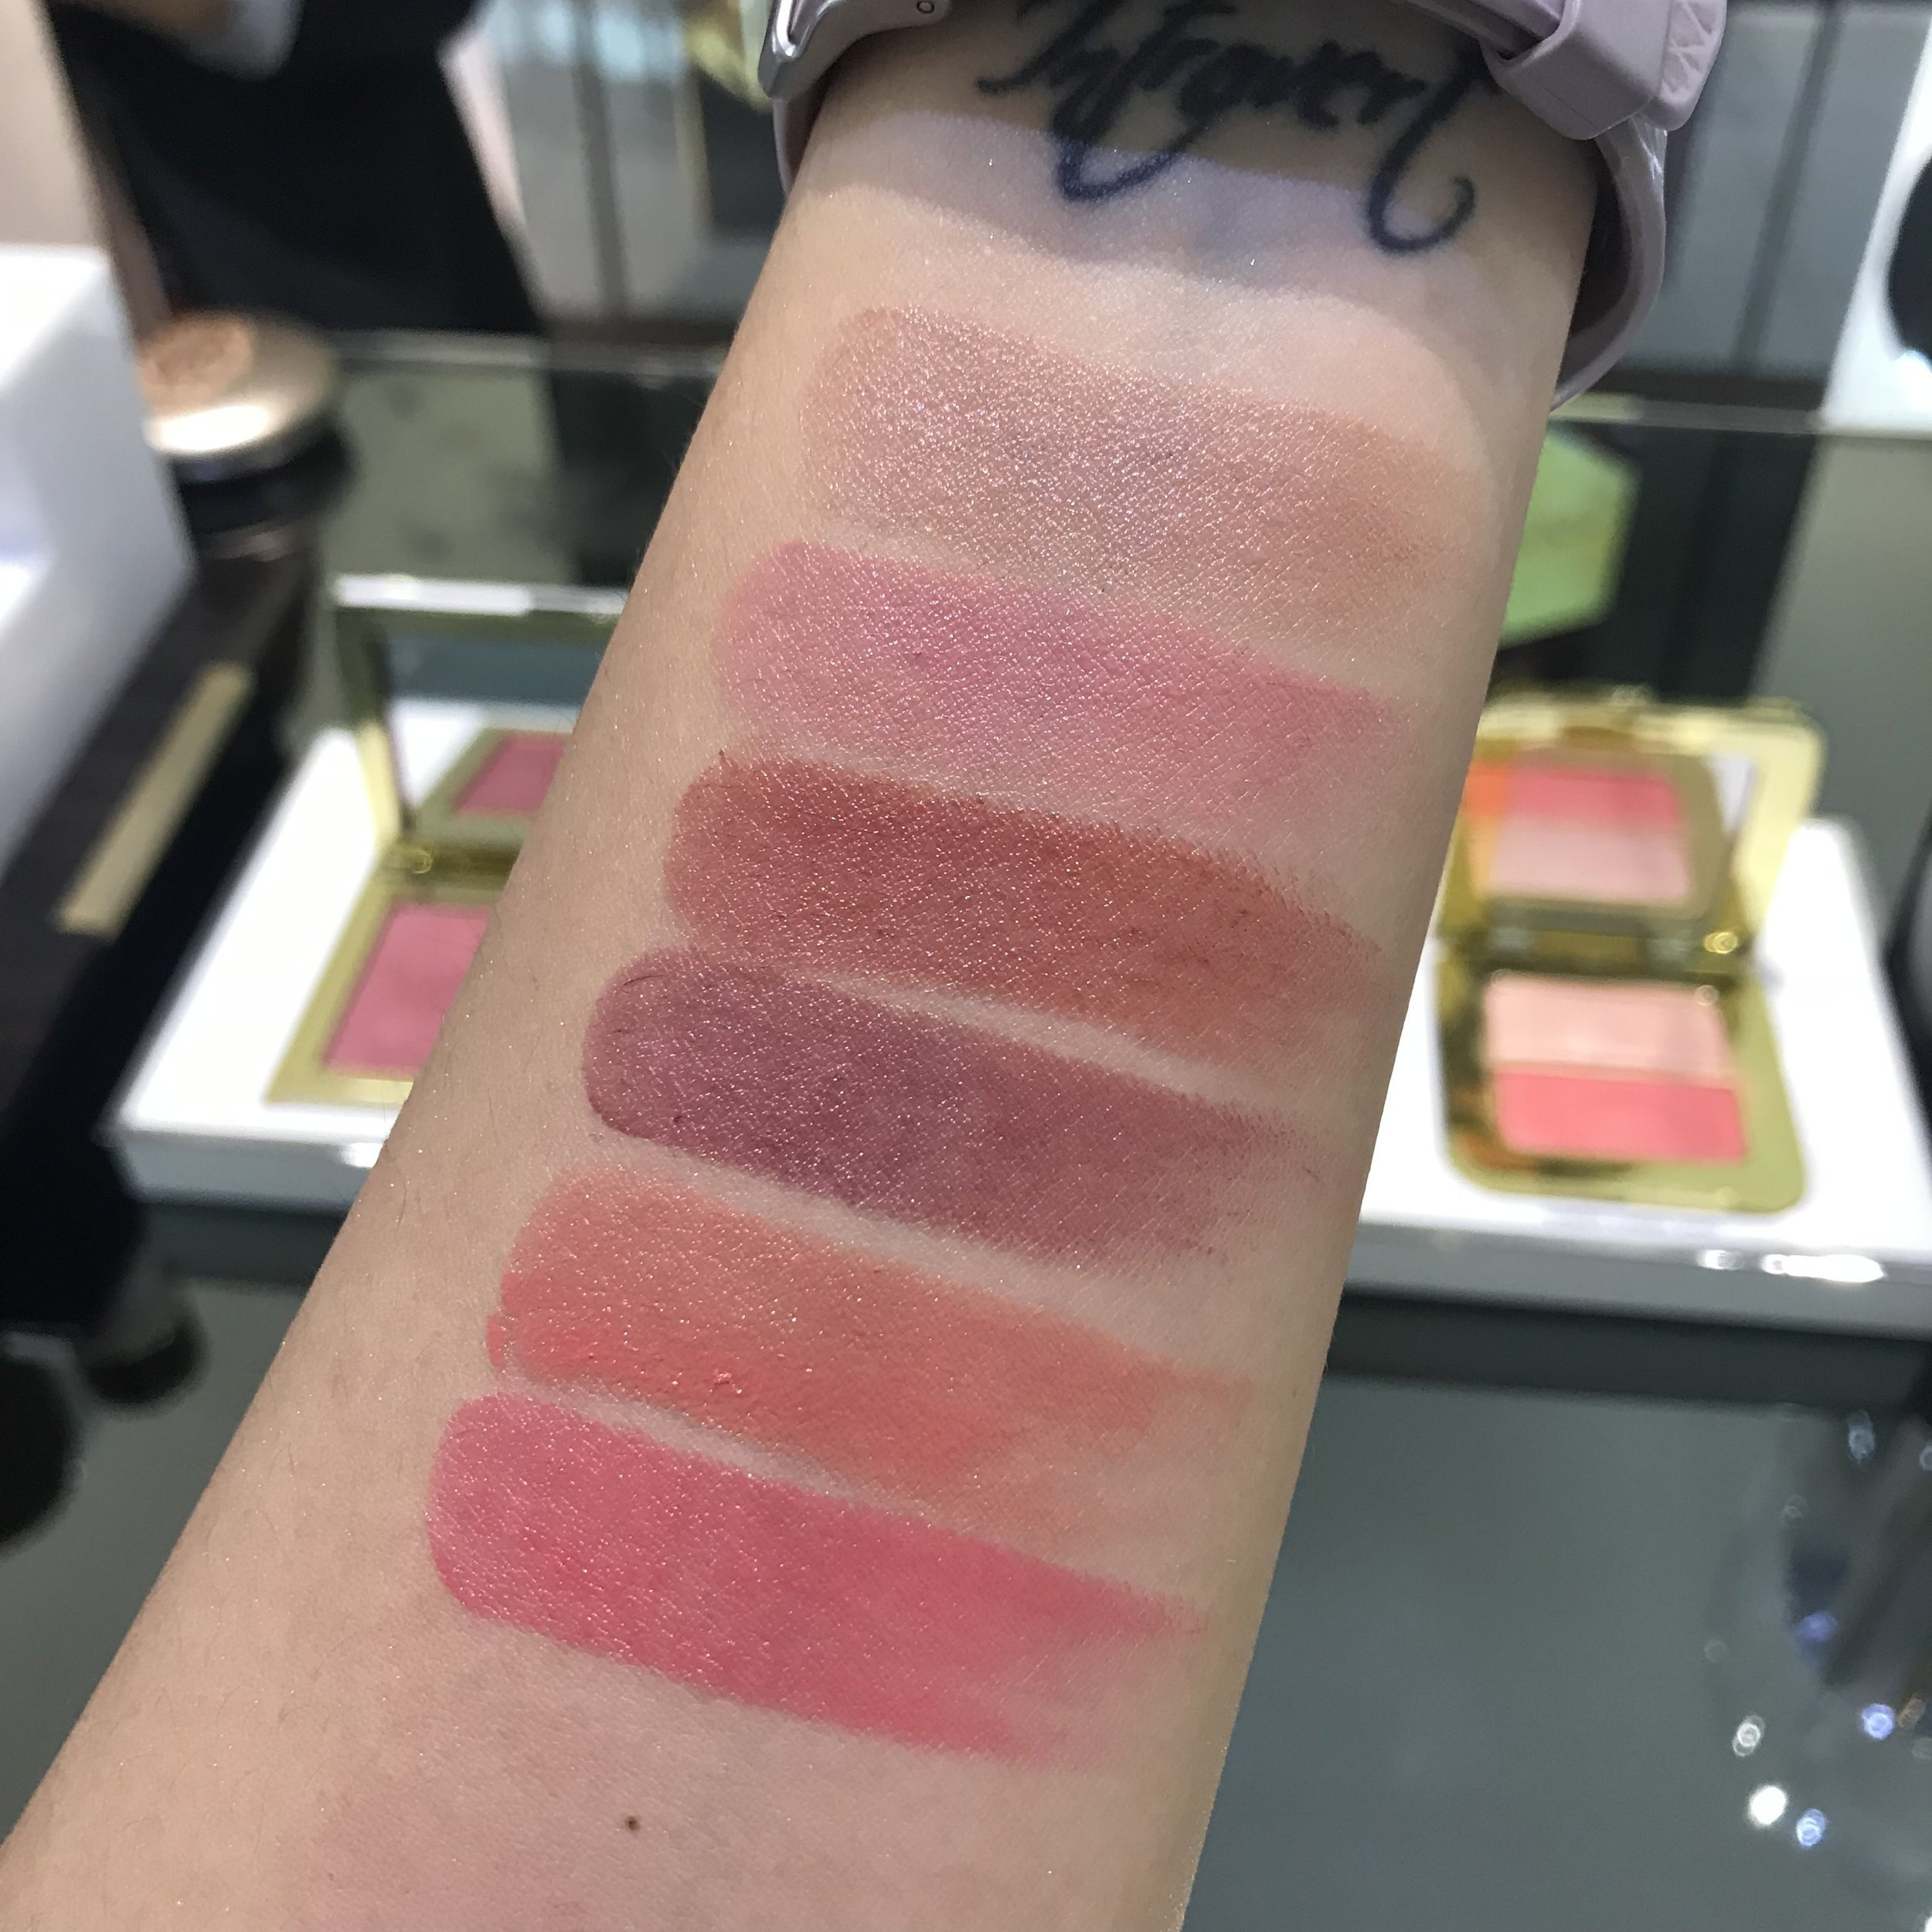 Tomford Ultra Shine Lip color swatches  Bare  Delectable  Nubile  Luscious  Lavish  Exuberant